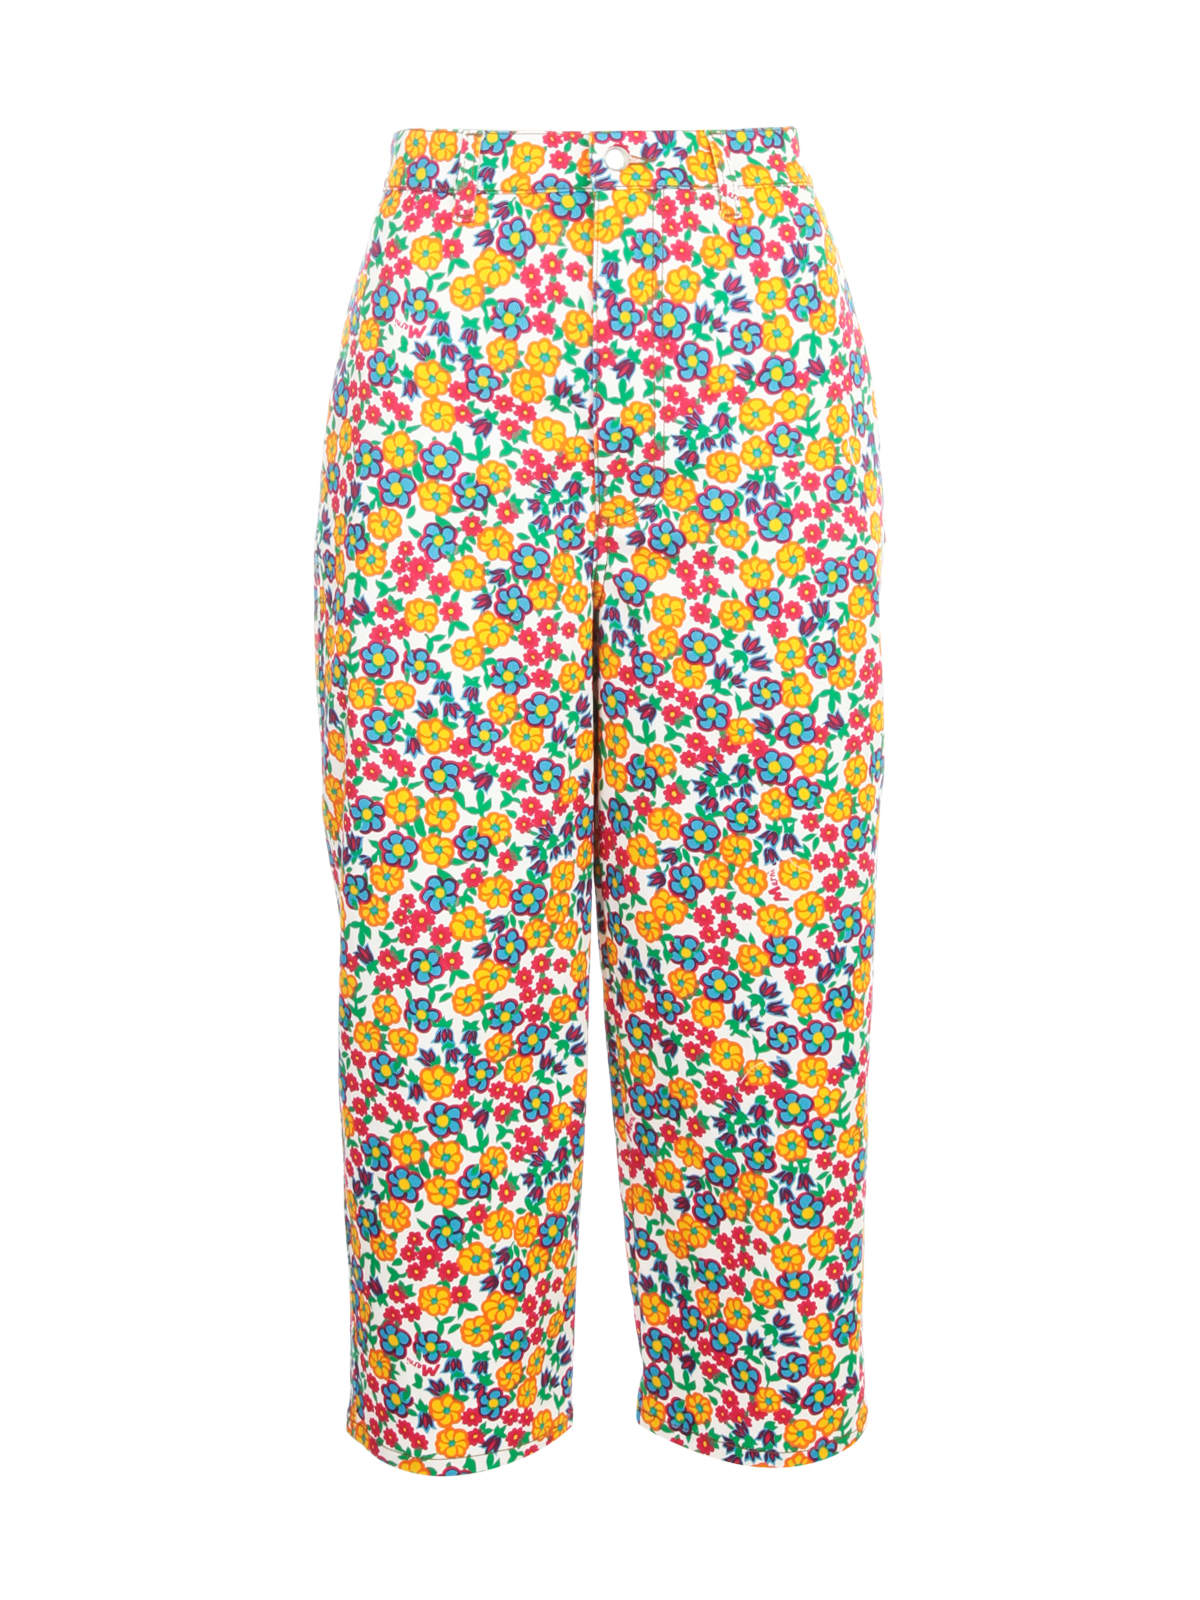 MARNI PANTS W/FLOWERS